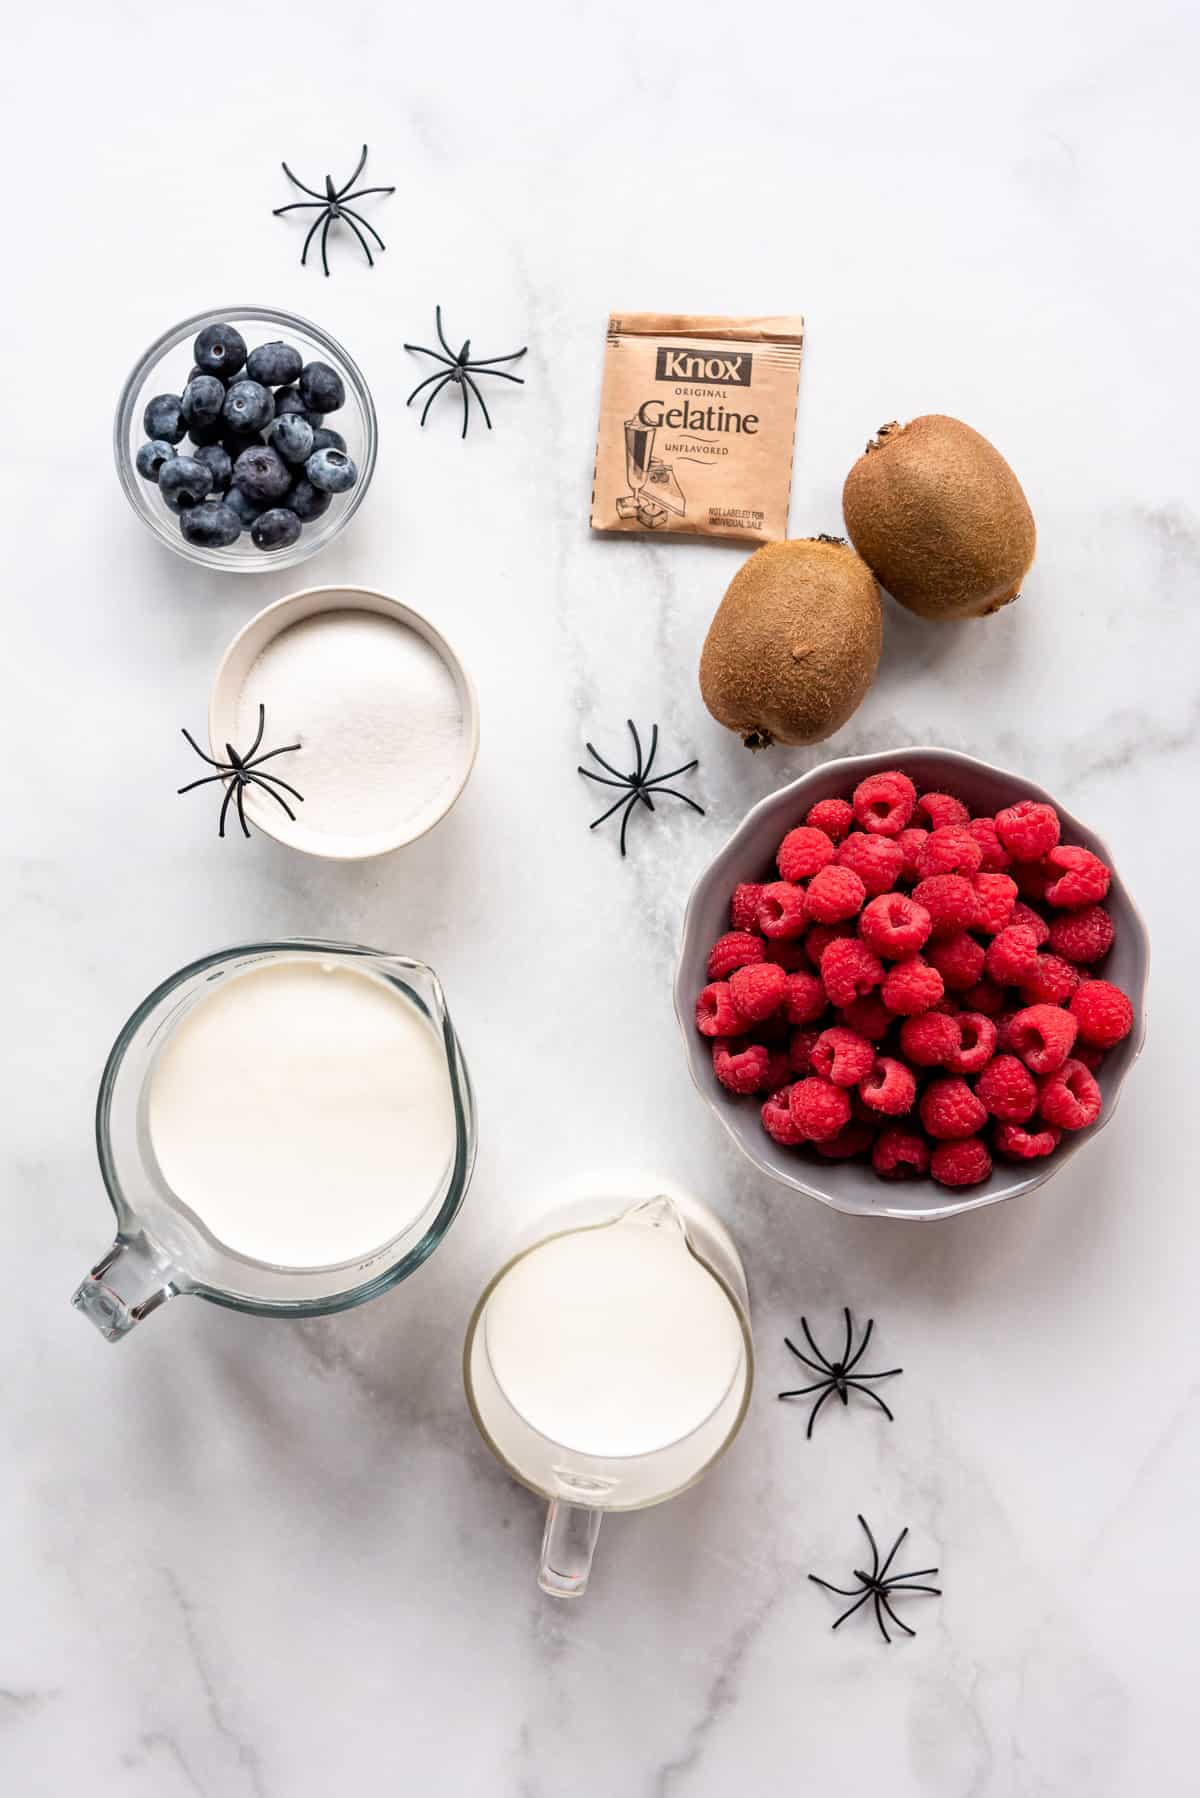 ingredients in separate bowls for making Halloween panna cotta with little plastic spiders surrounding them.